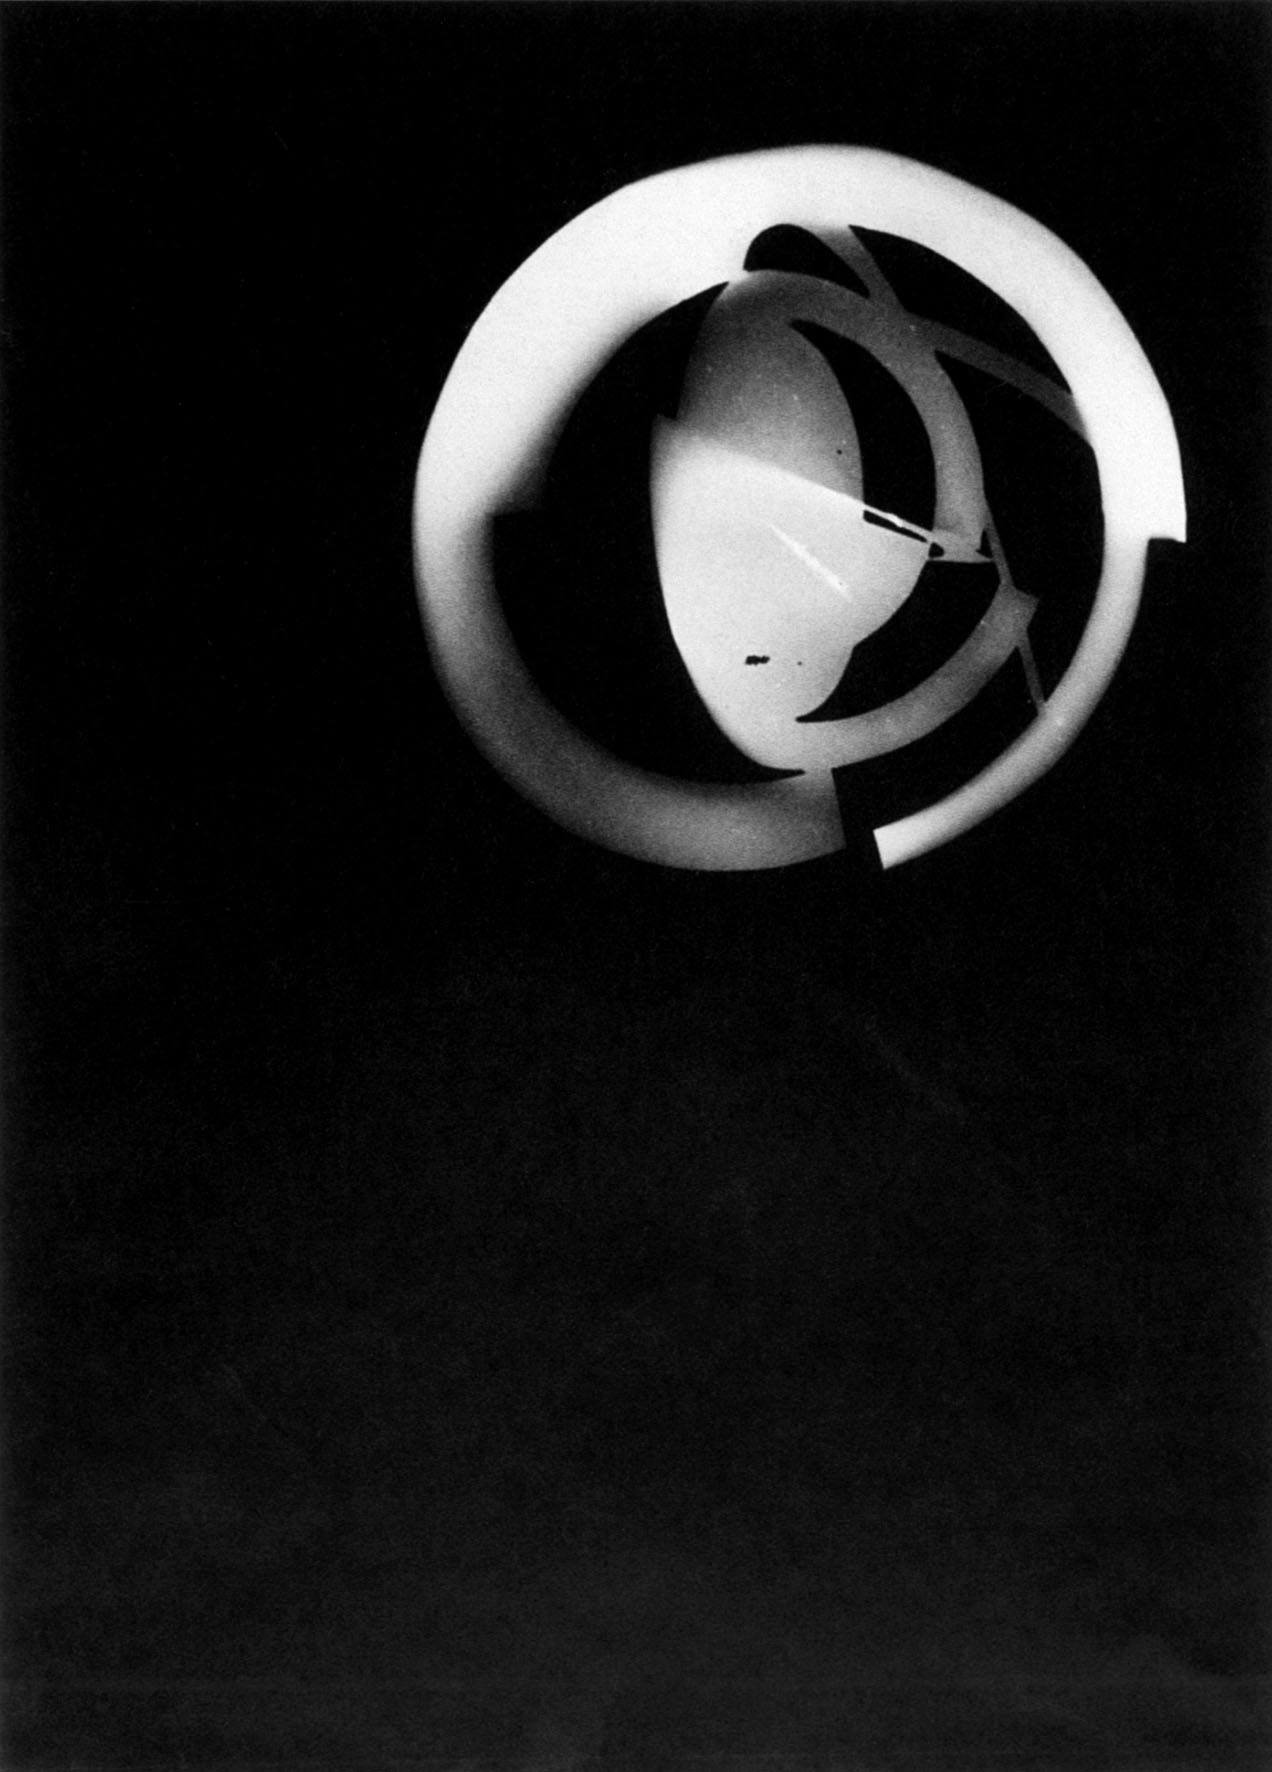 Illustration 4: László Moholy-Nagy, Photogram, Dessau 1925-28